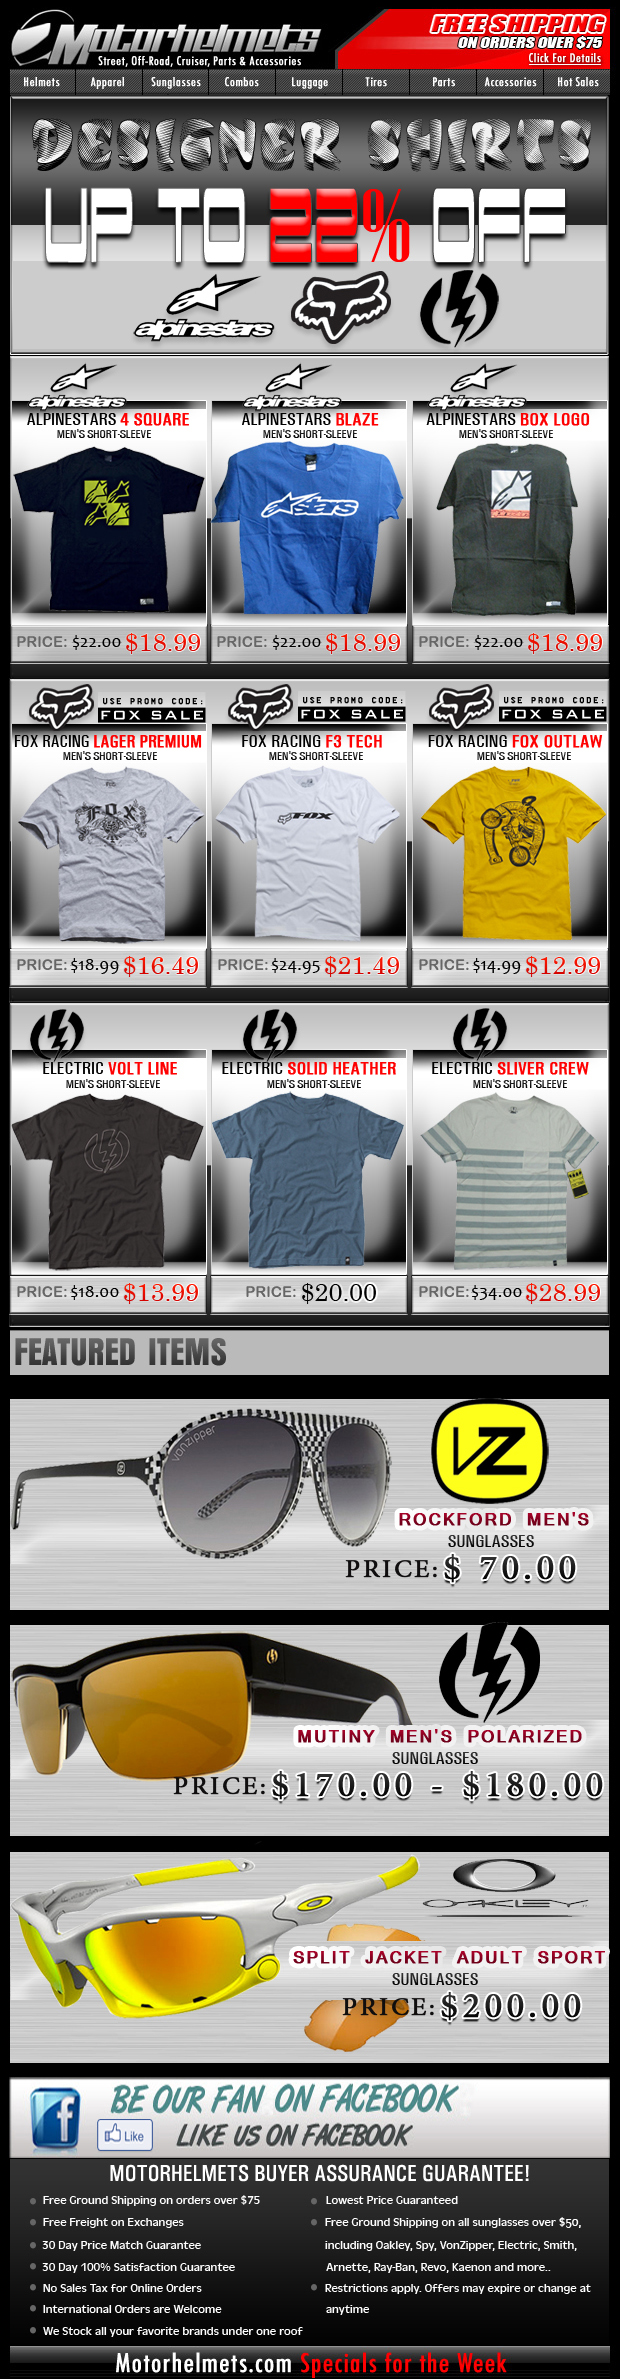 Save up to 22% off on Select Premium Tees from Alpinestars, Fox and Electric!